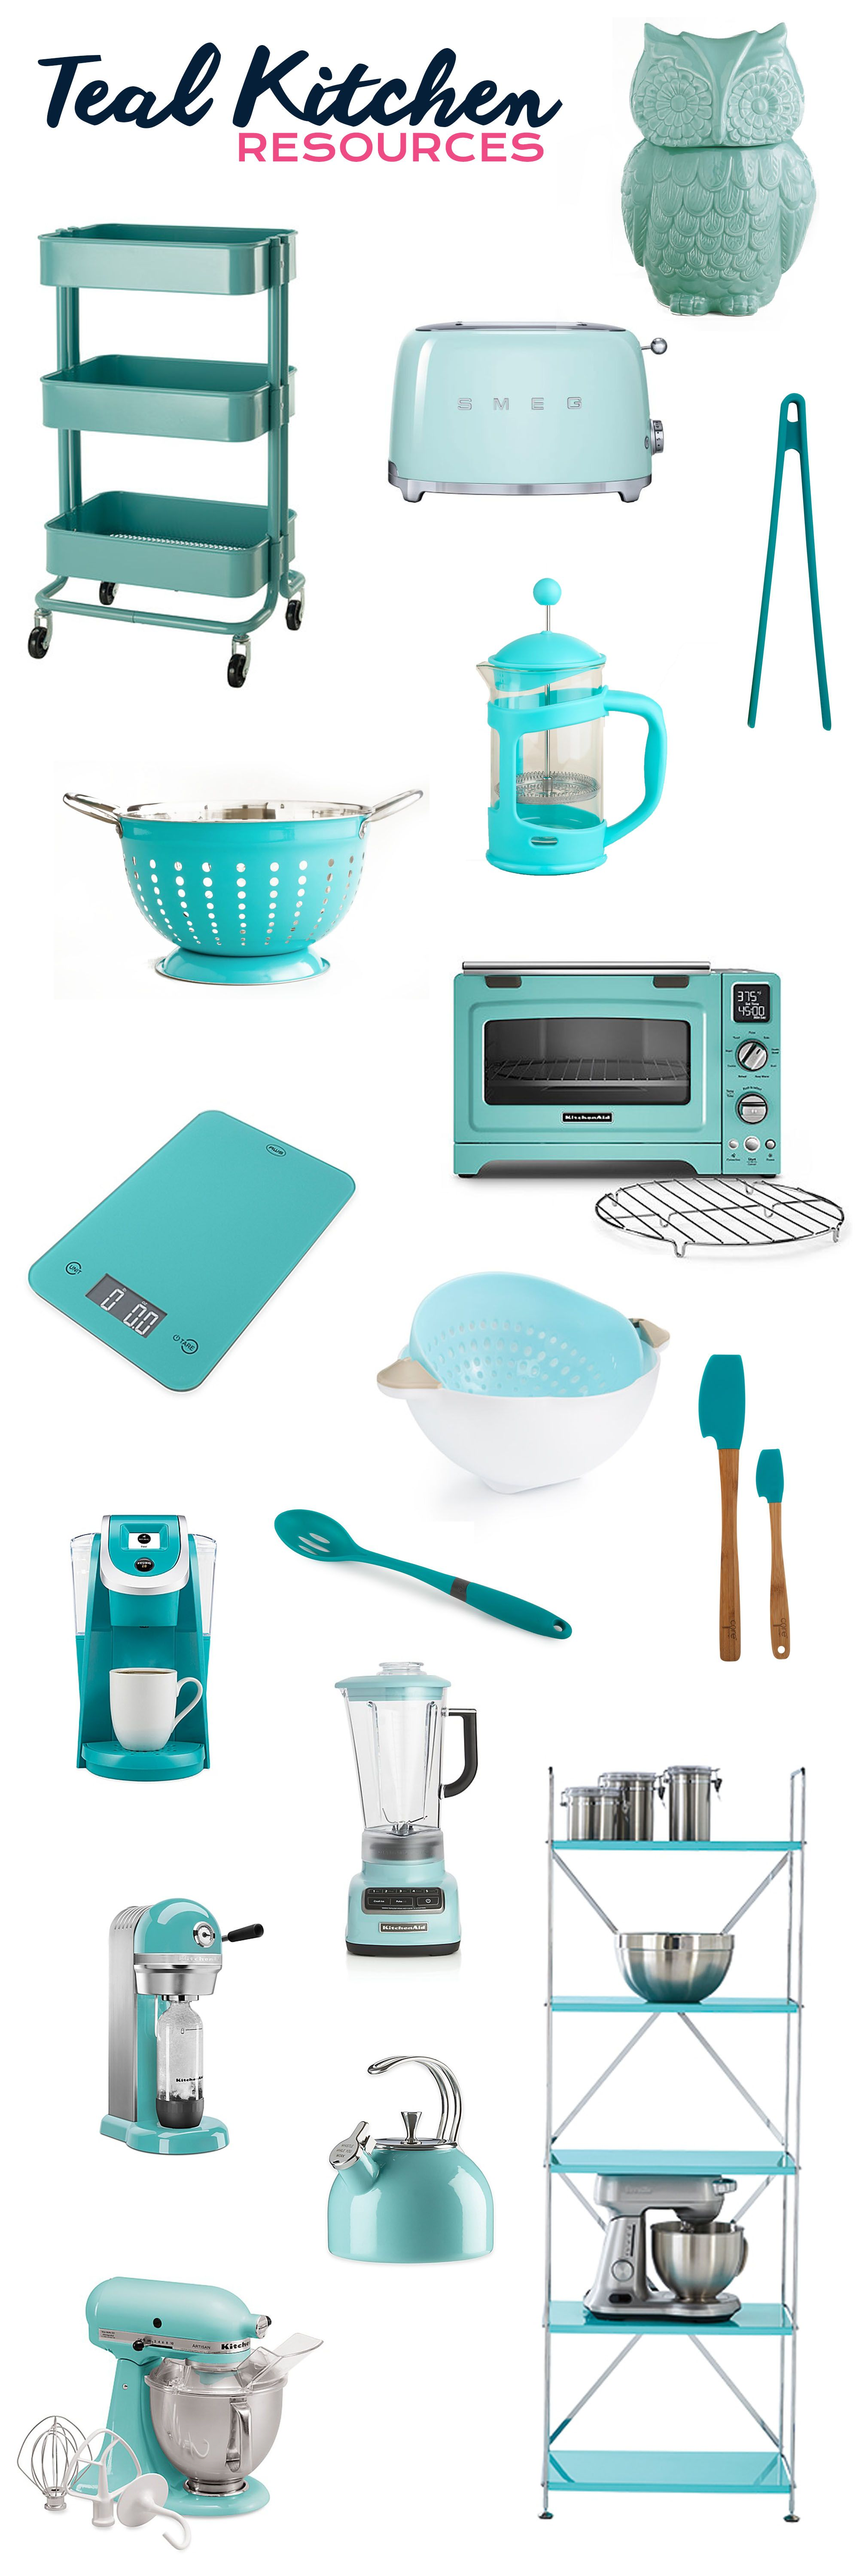 My Favorite Resources for Teal Kitchens | Teal kitchen, Kitchen ...